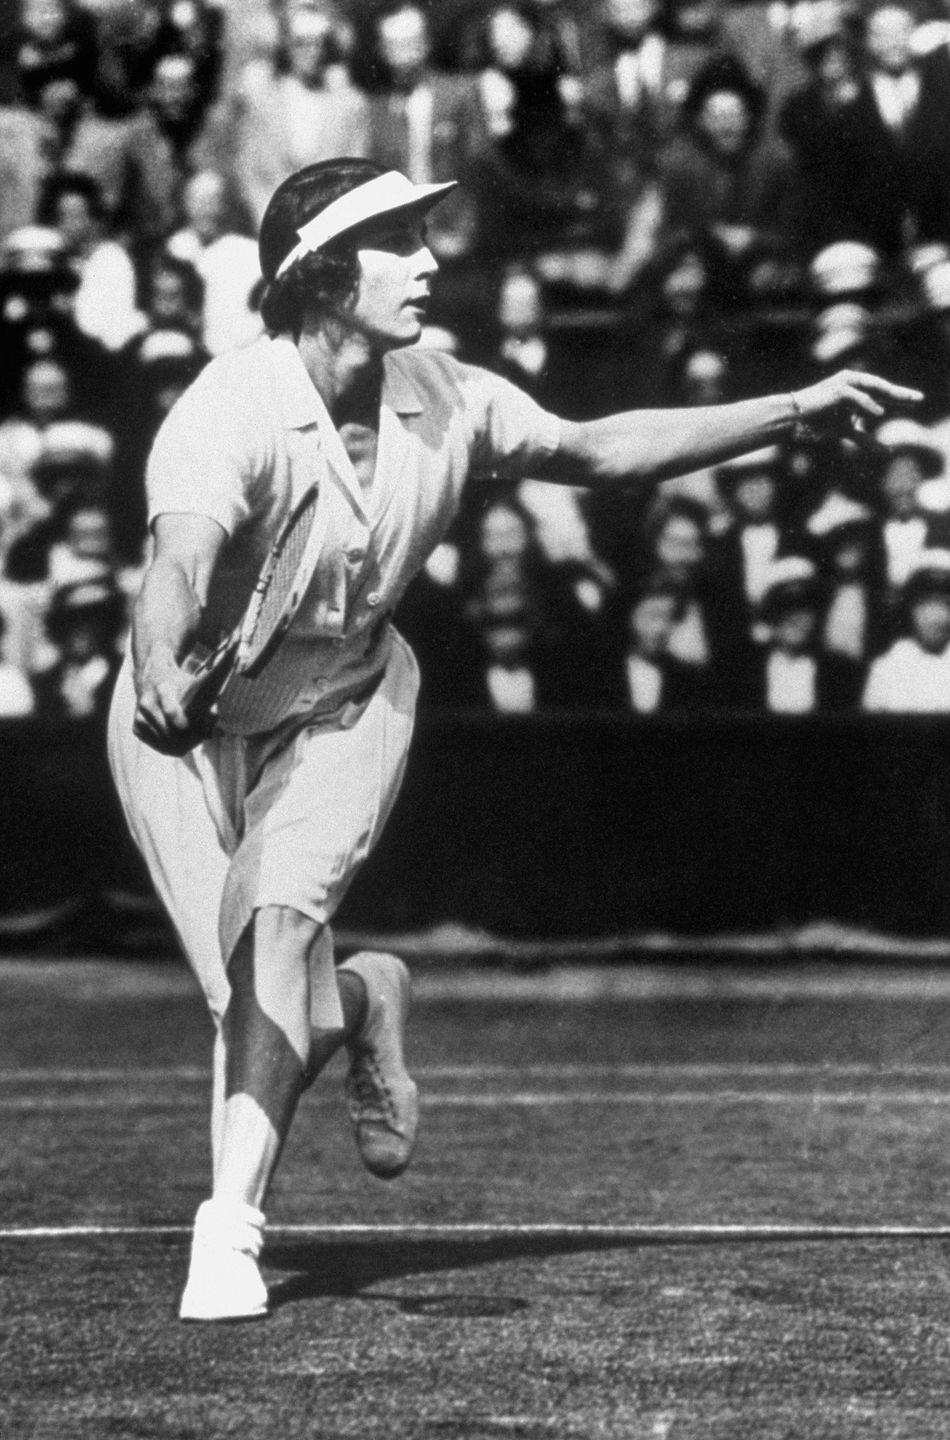 <p>Oldies but goodies! Robert, John, William, Mary, Dorothy, and Helen were still crowd pleasers. American tennis player Helen Wills Roark, who later became famous for holding the top position in women's tennis for a total of nine years, won her first women's national title in 1923 at the age of 17.</p>